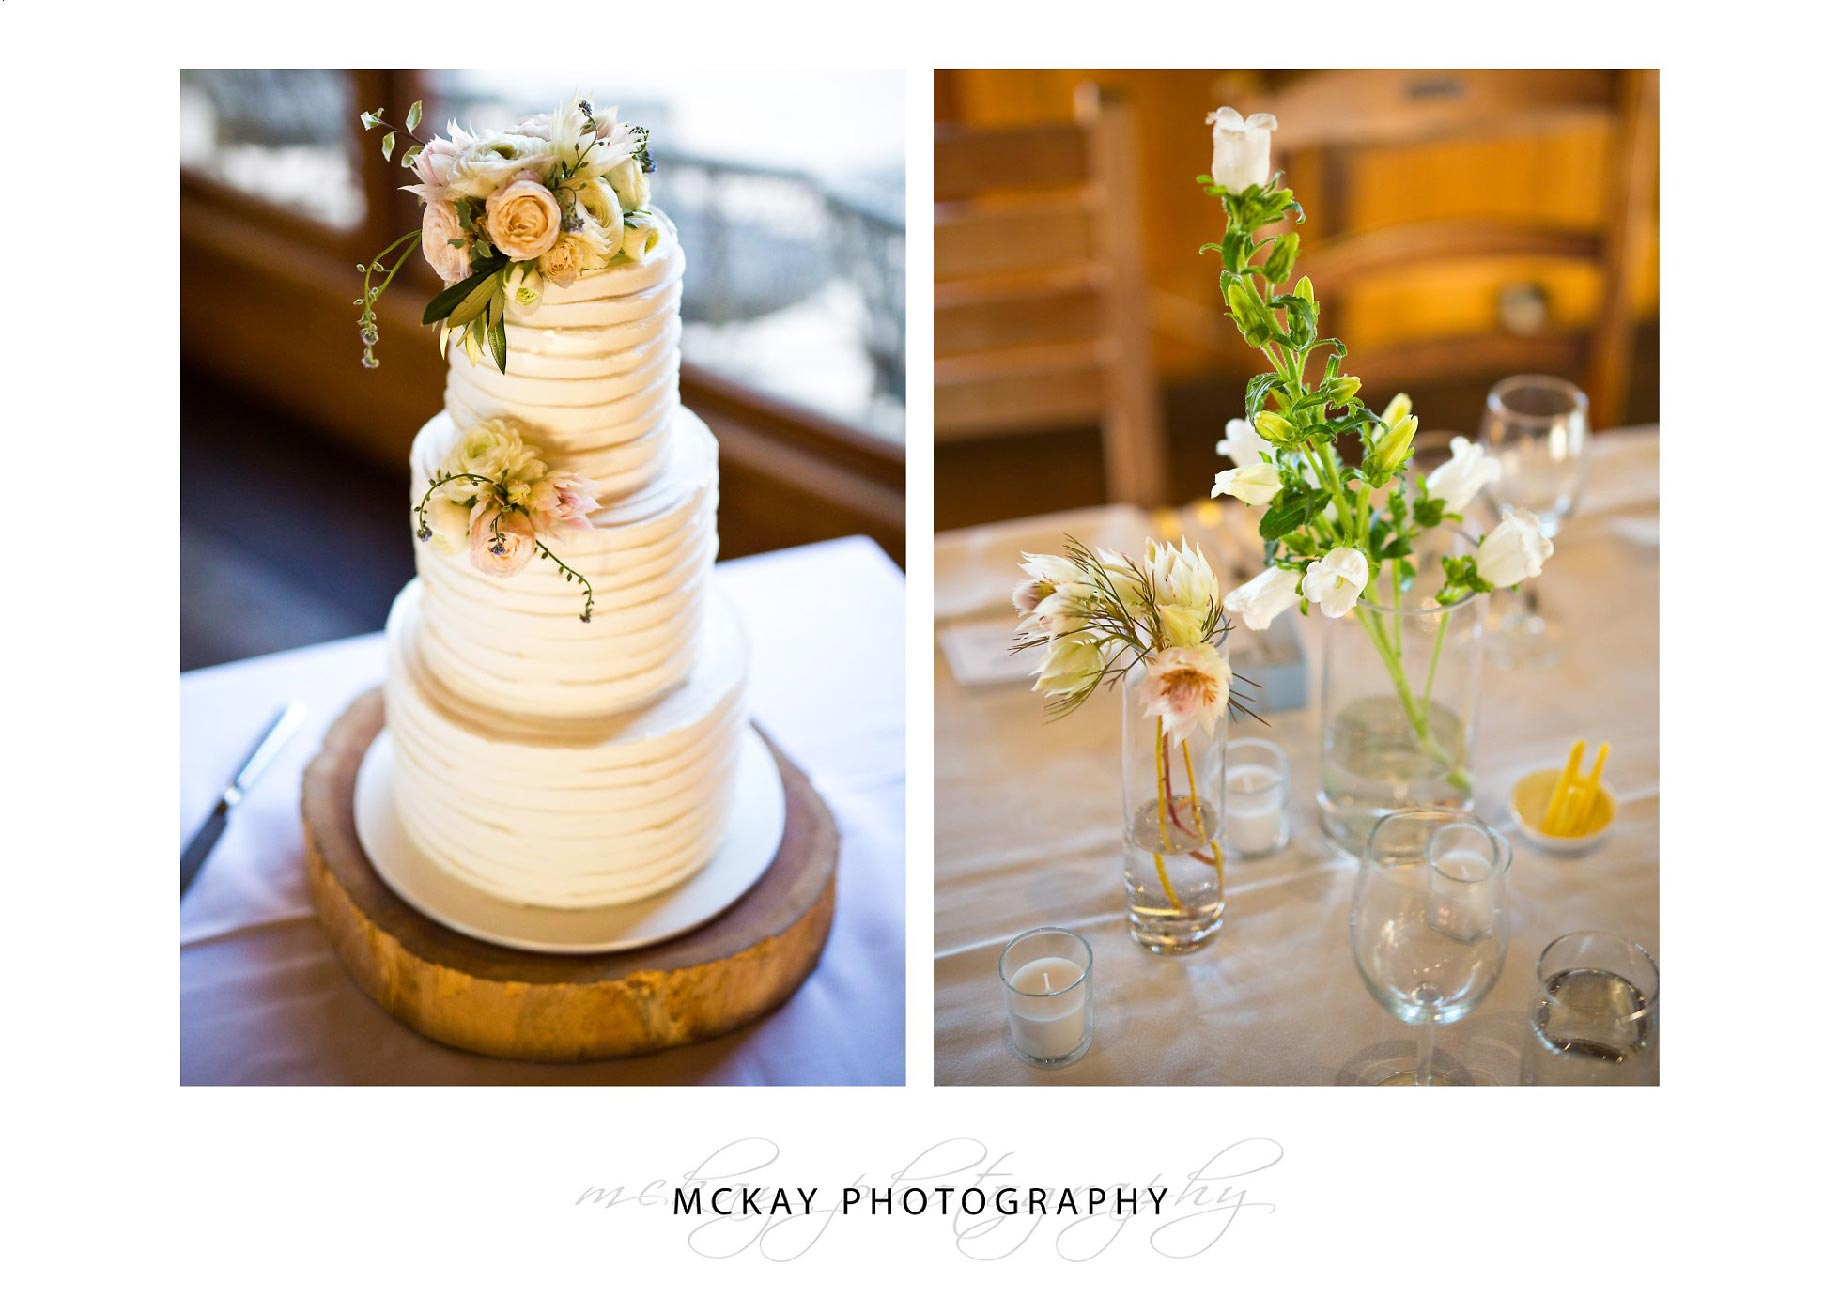 Wedding cake and table flower detail